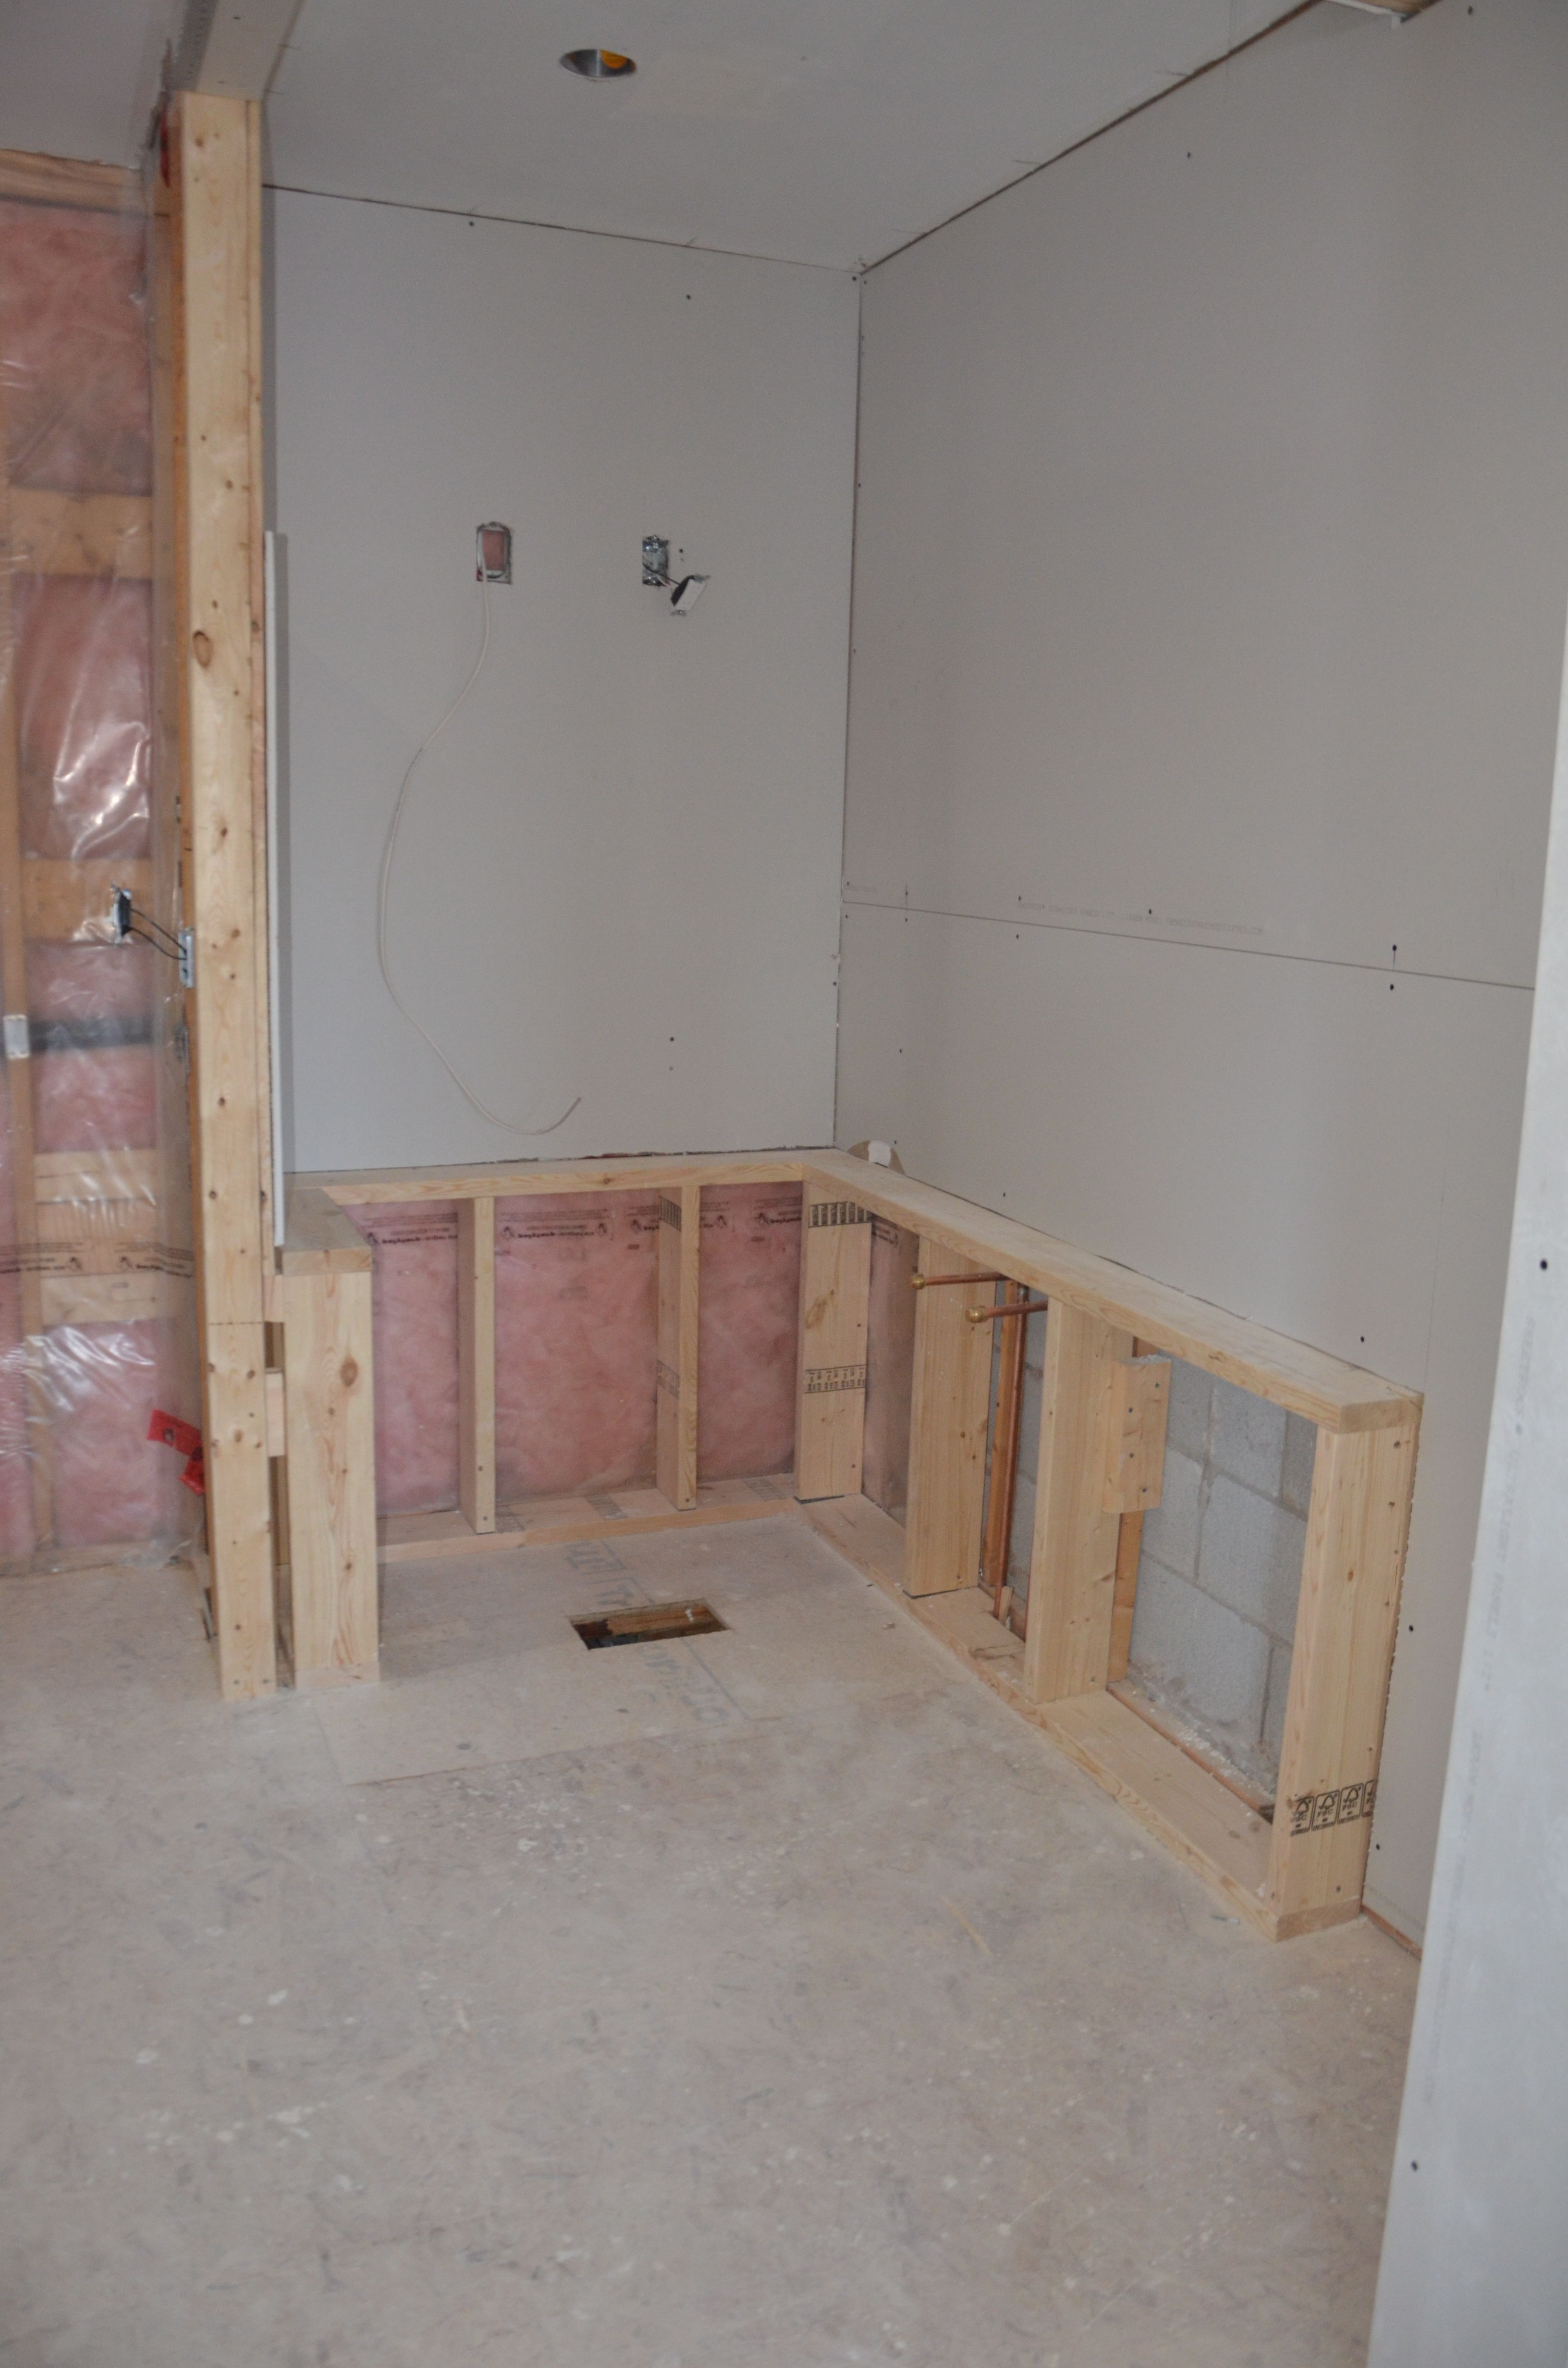 Tub area framed in